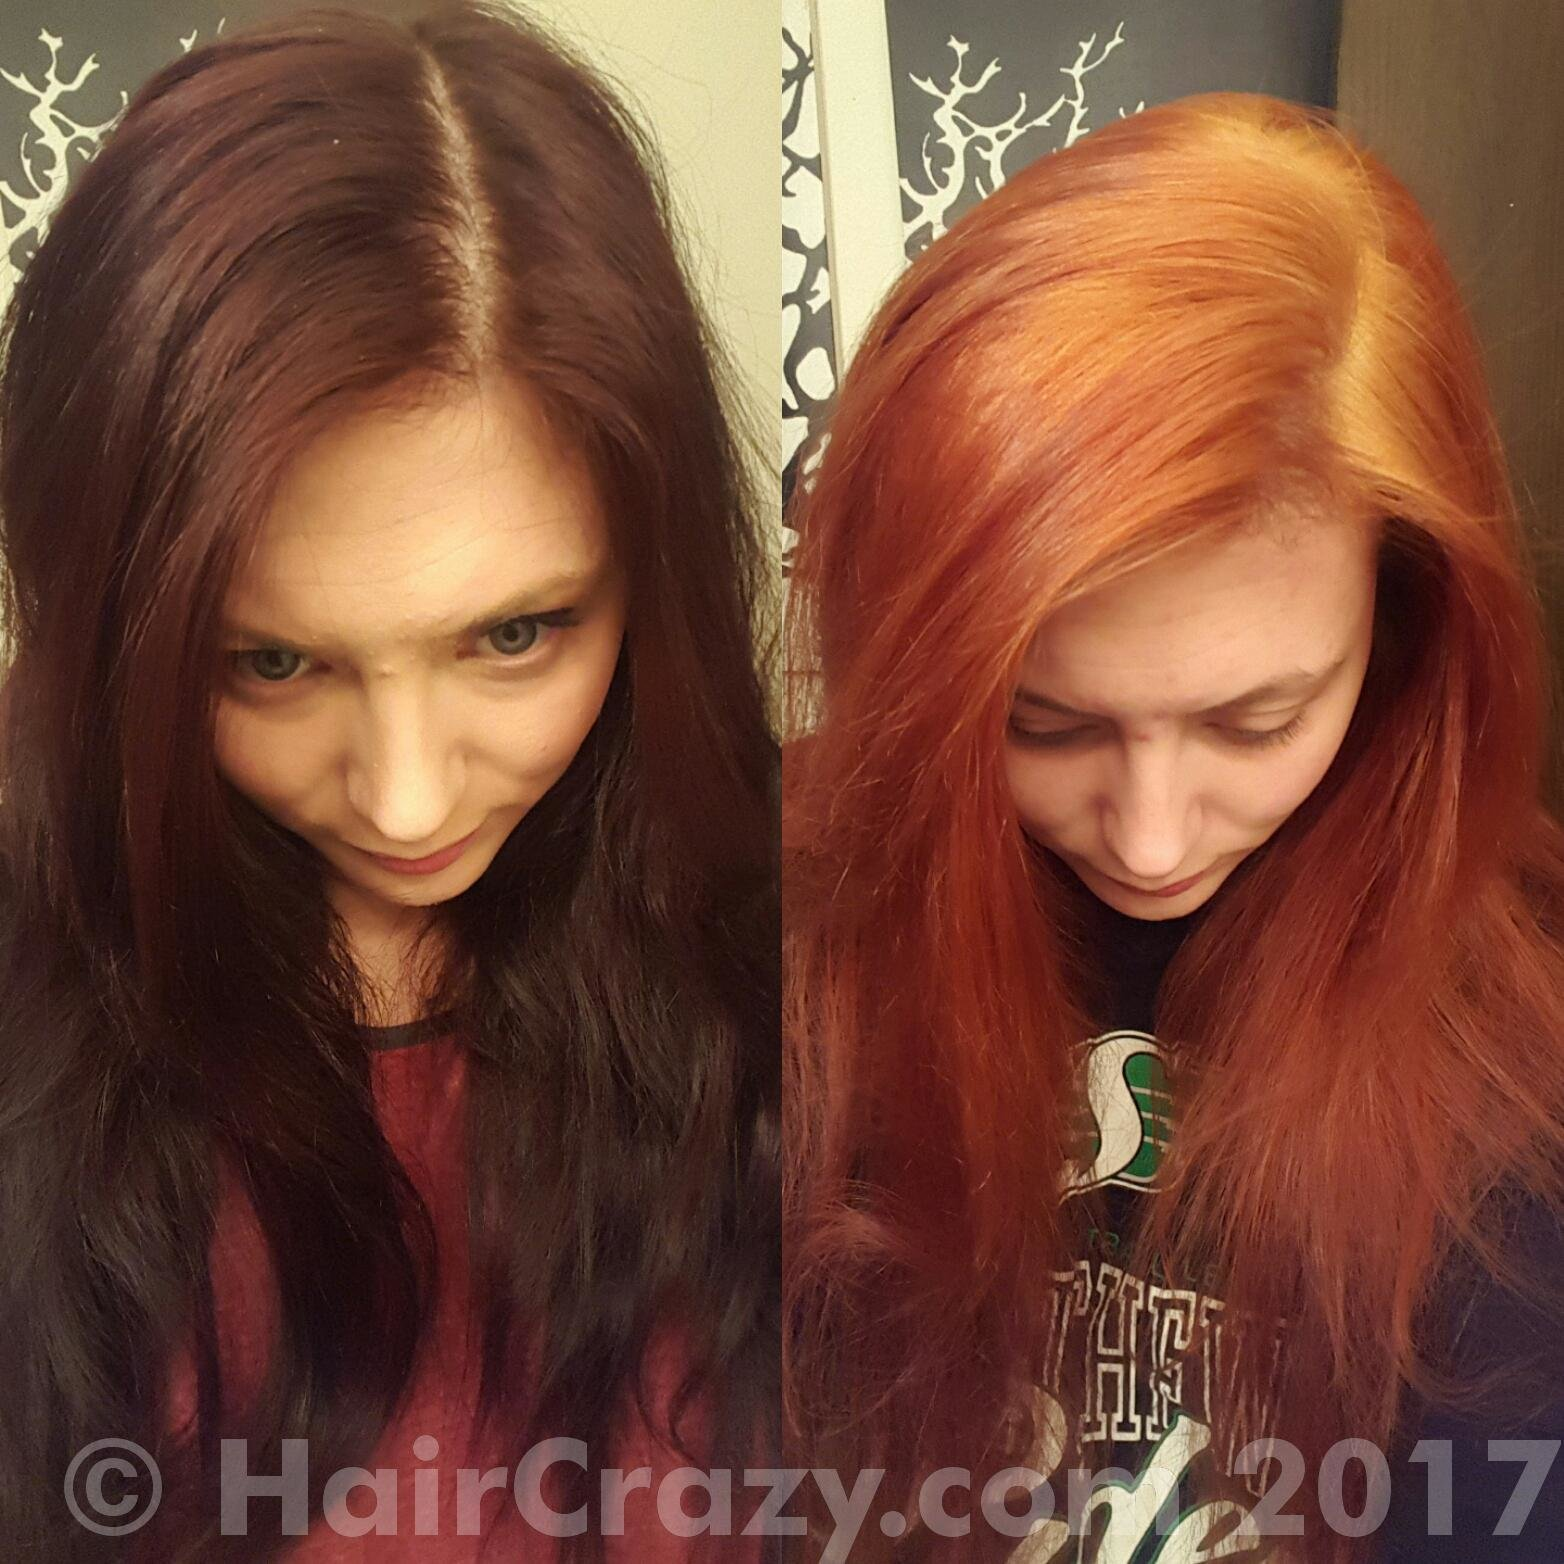 New Redying After Color Remover Forums Haircrazy Com Ideas With Pictures